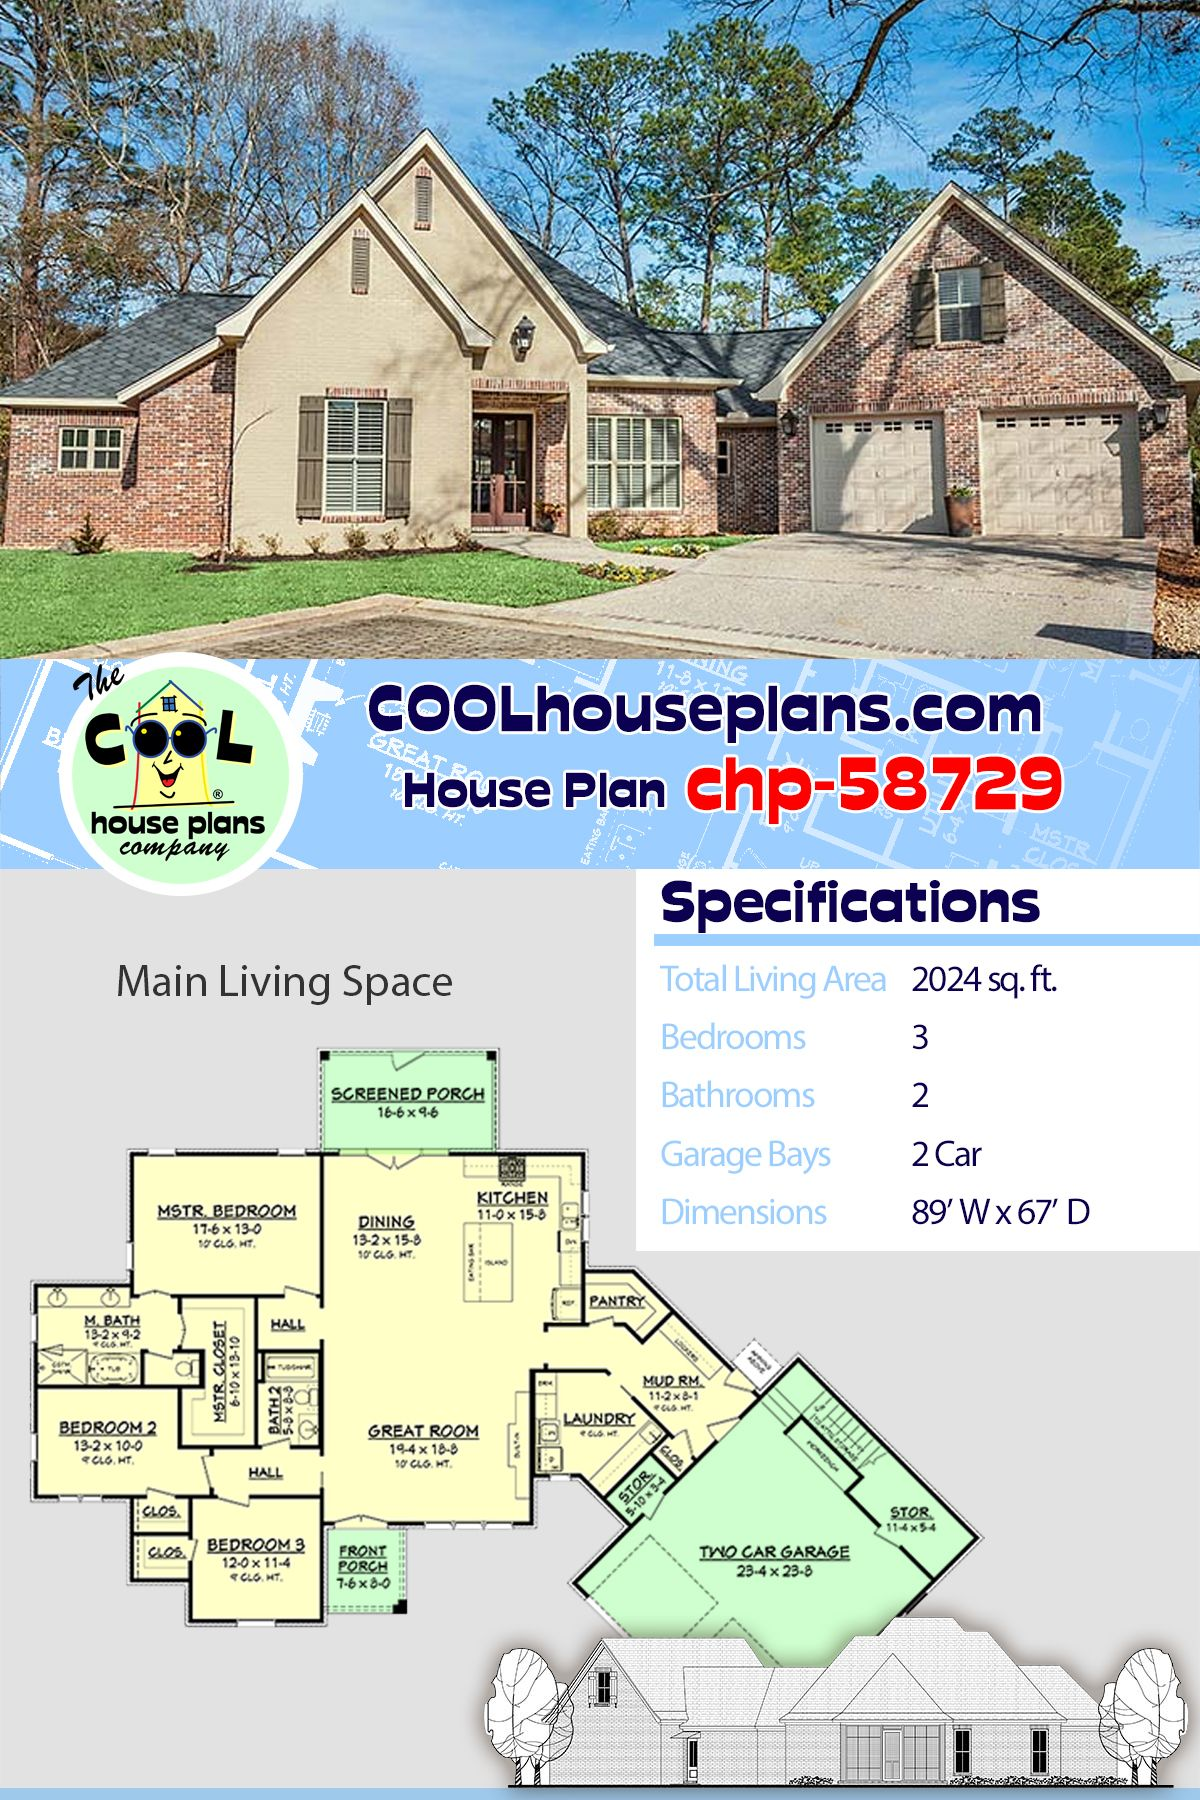 French Country House Plan Or Acadian Style Home Design With Three Bedrooms And Two Bathrooms French Country House Plans House Plans Acadian Style Homes